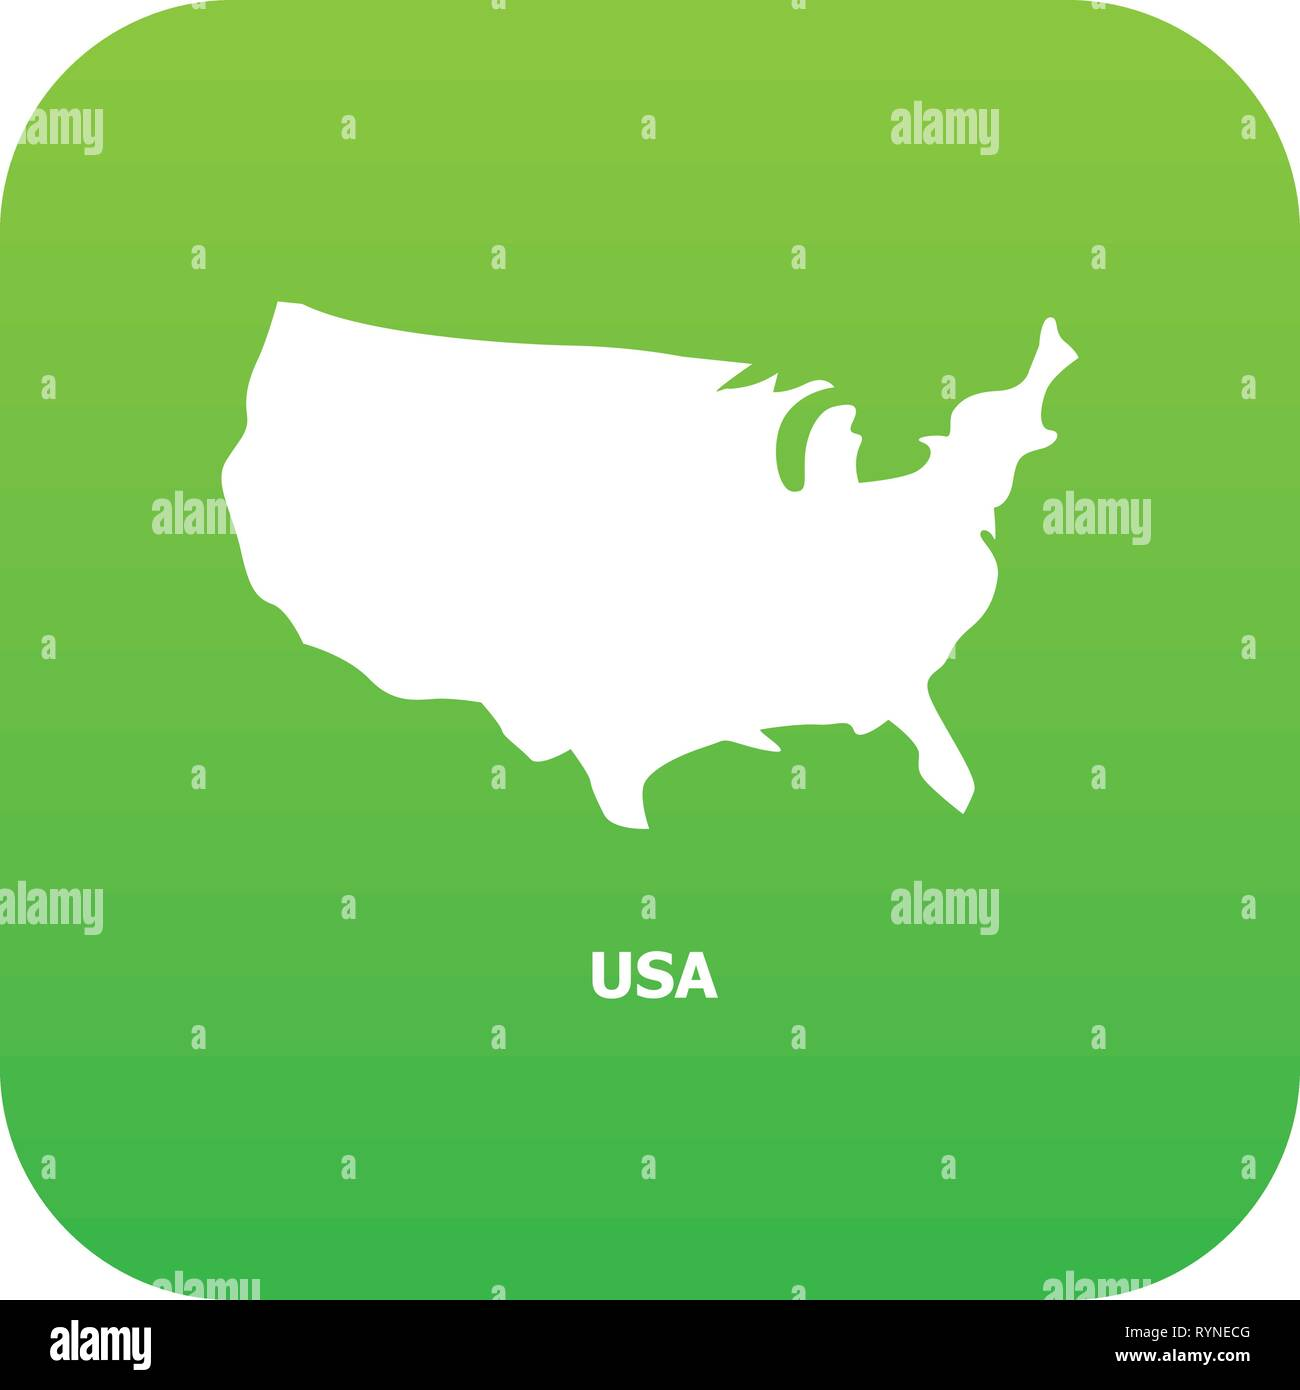 Usa Map Icon Simple Style Stock Vector Art Illustration